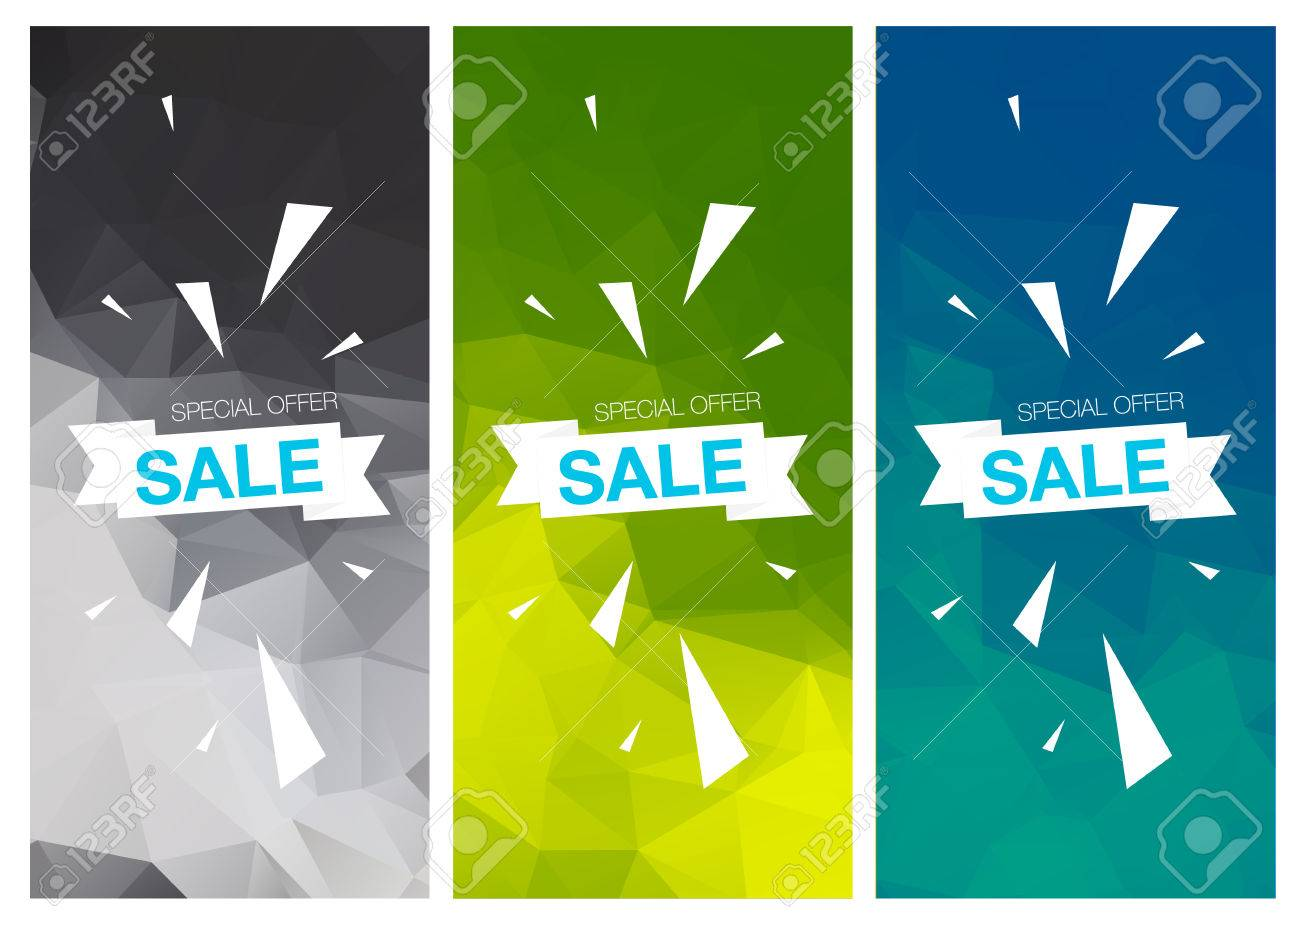 super special offer web banner templates on colored super special offer web banner templates on colored background stock vector 53082703